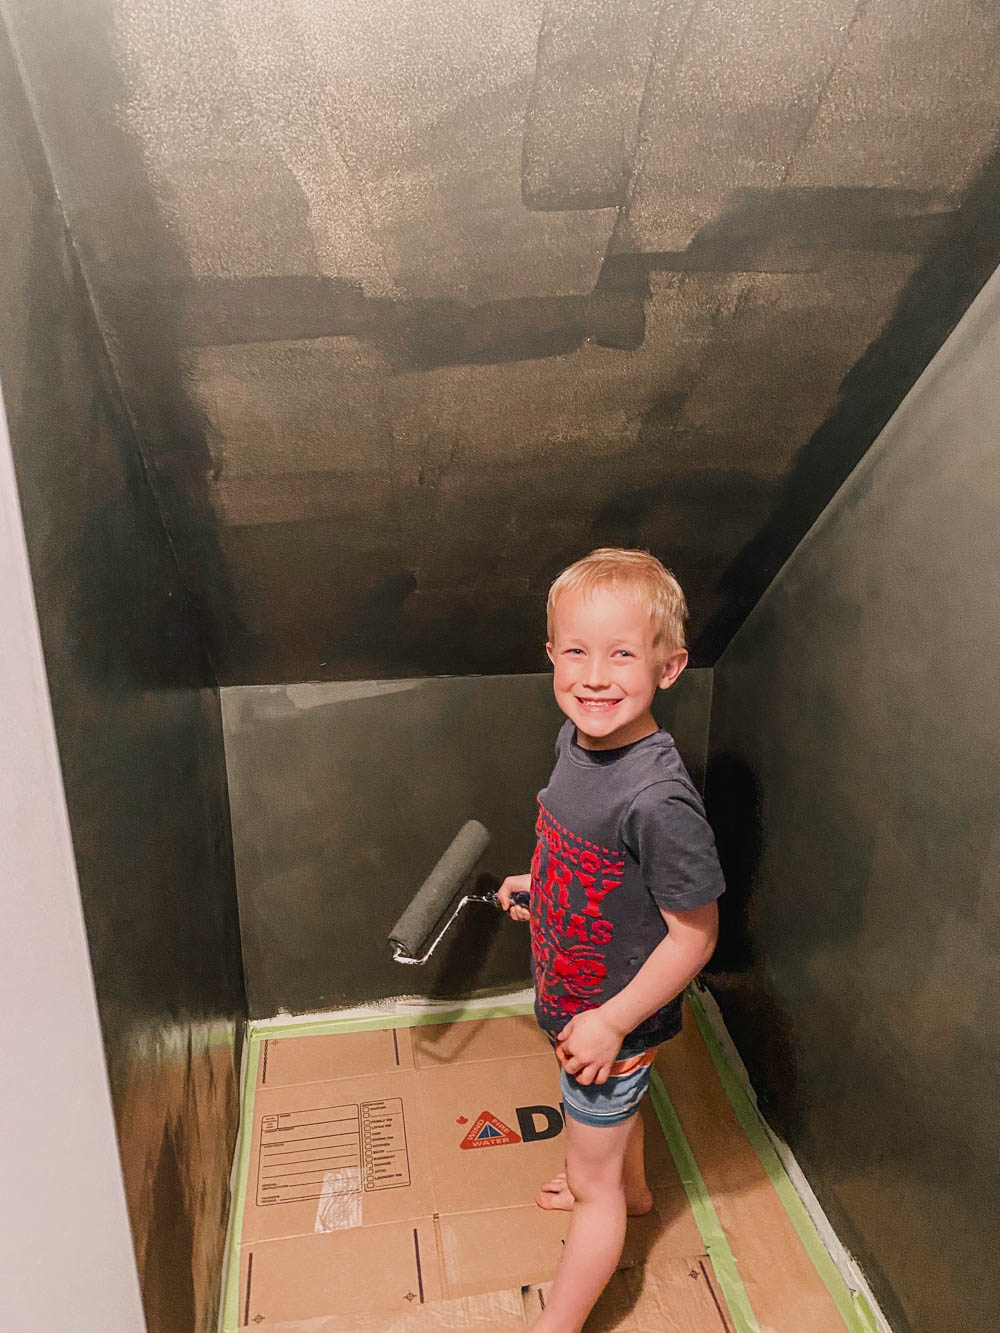 Kids Helping Paint under stairs to dress up nook